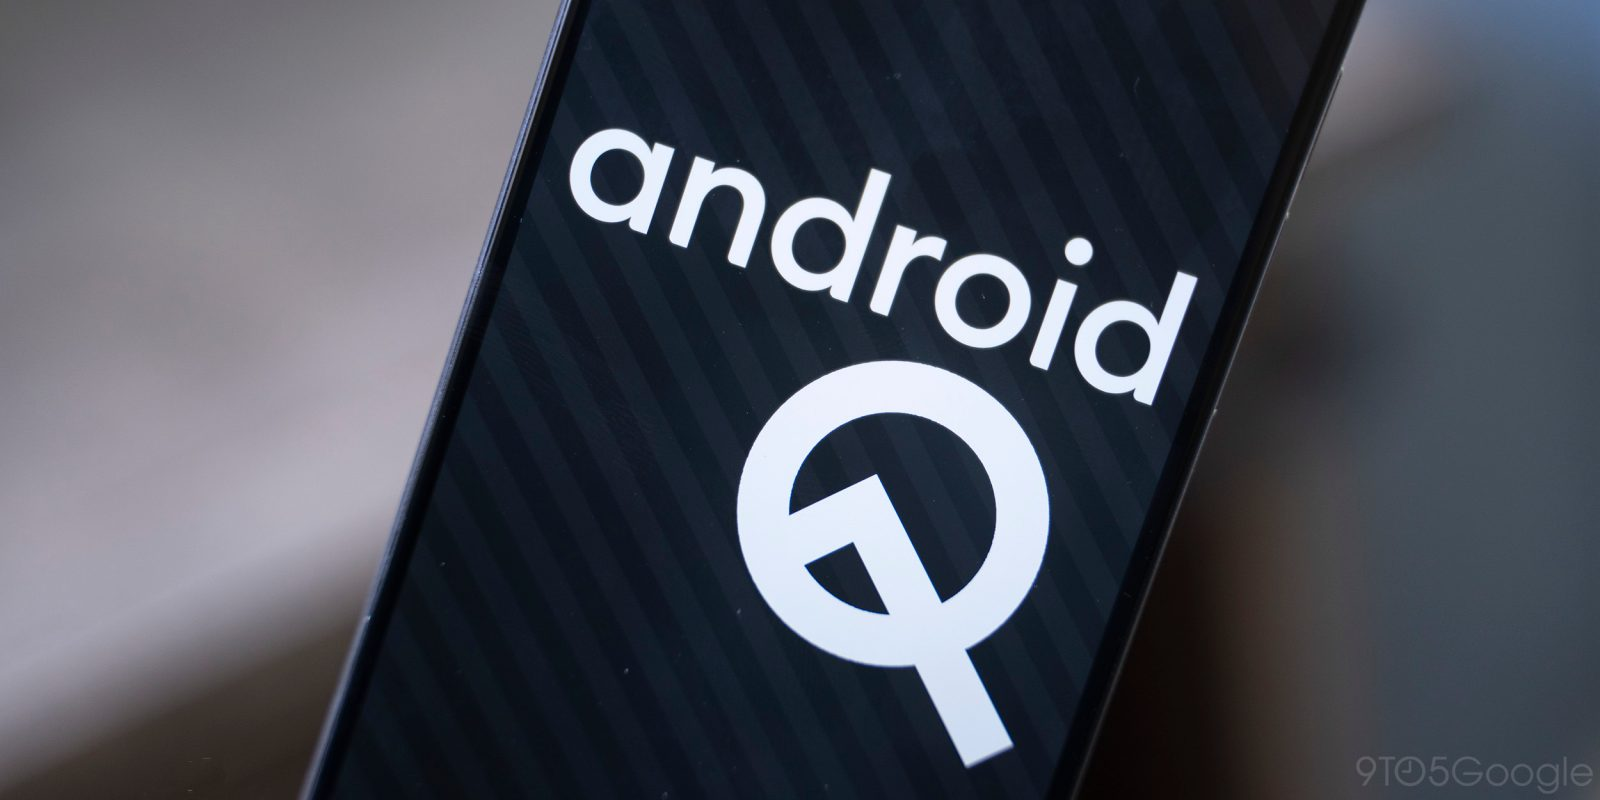 Android Q - 9to5Google